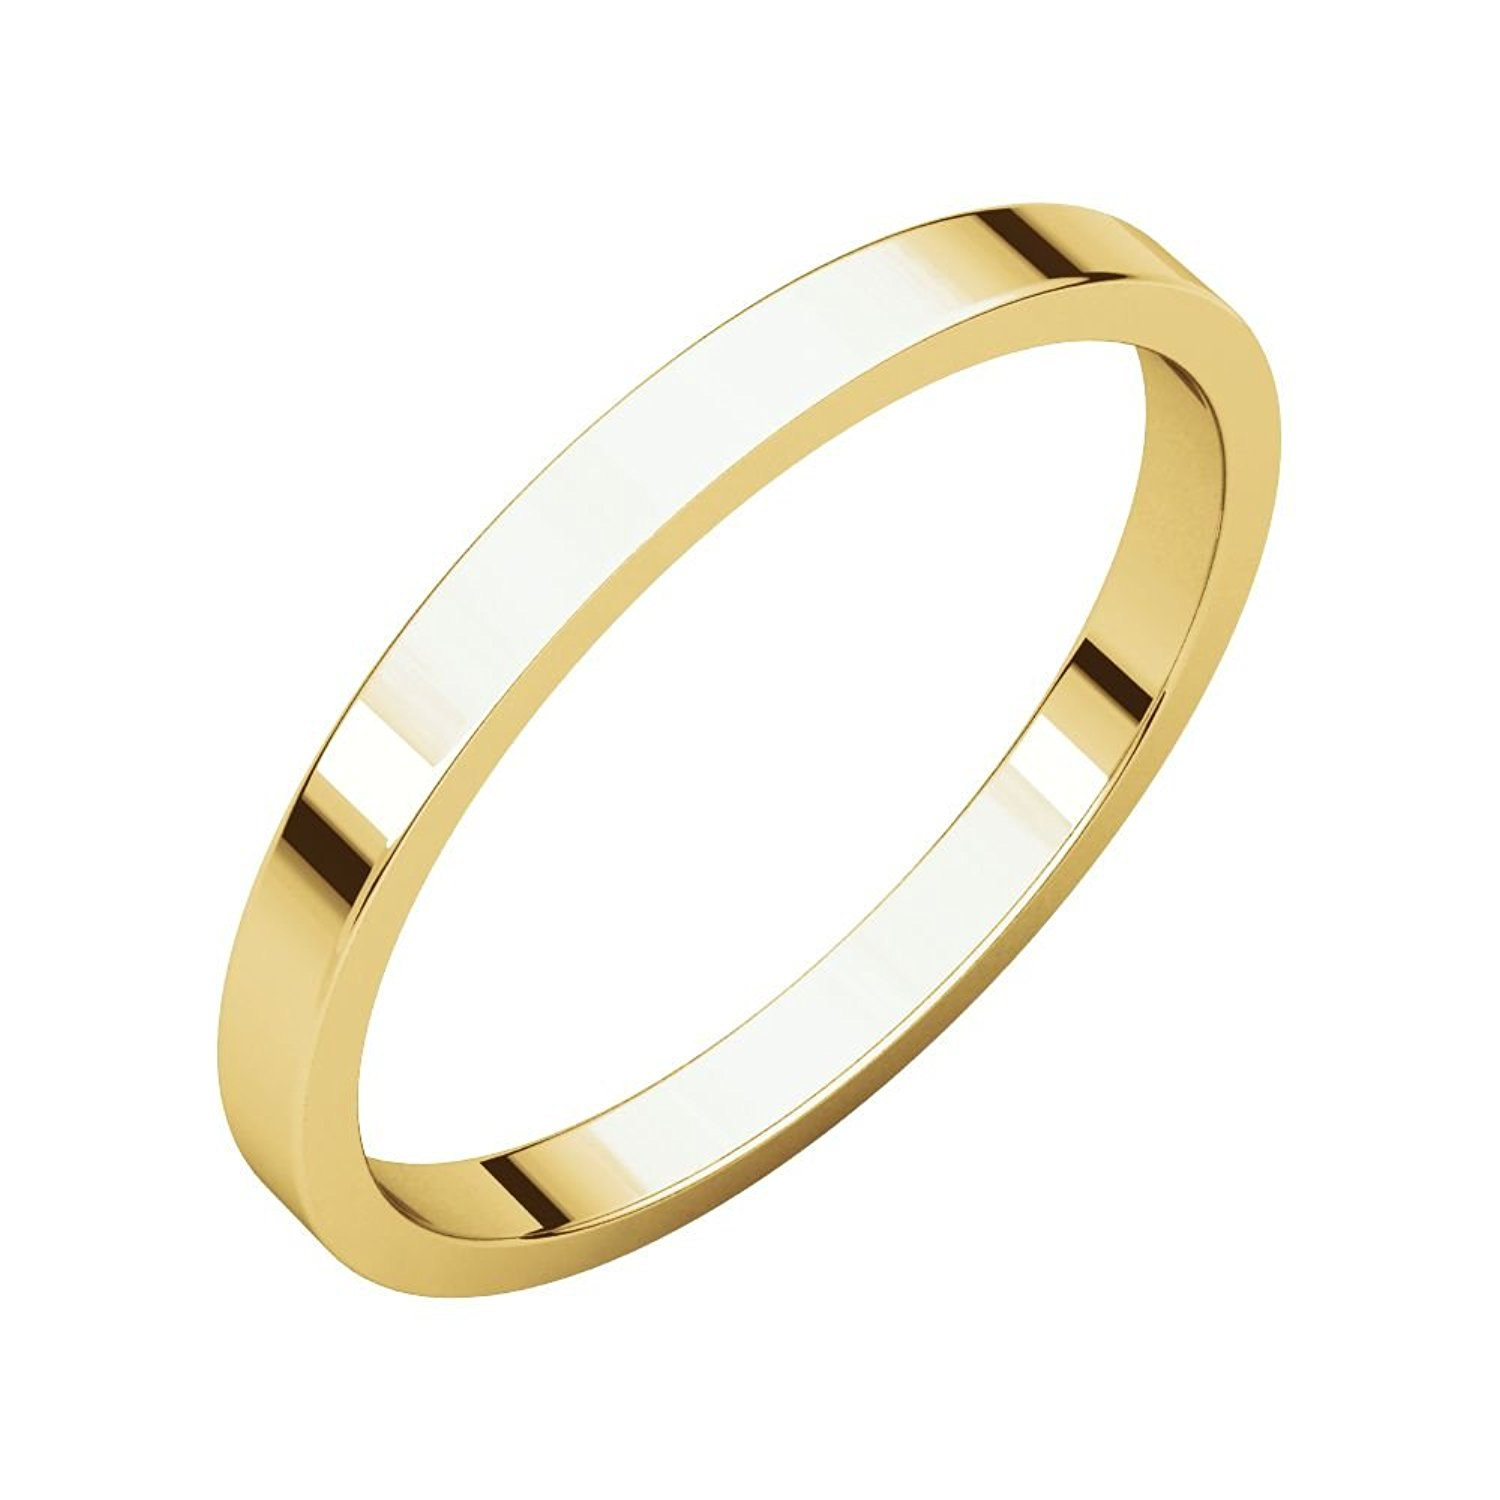 c526c5074 Get Quotations · 10k Yelllow Gold 2mm Flat Band, 10kt Yellow gold, Ring  Size 4